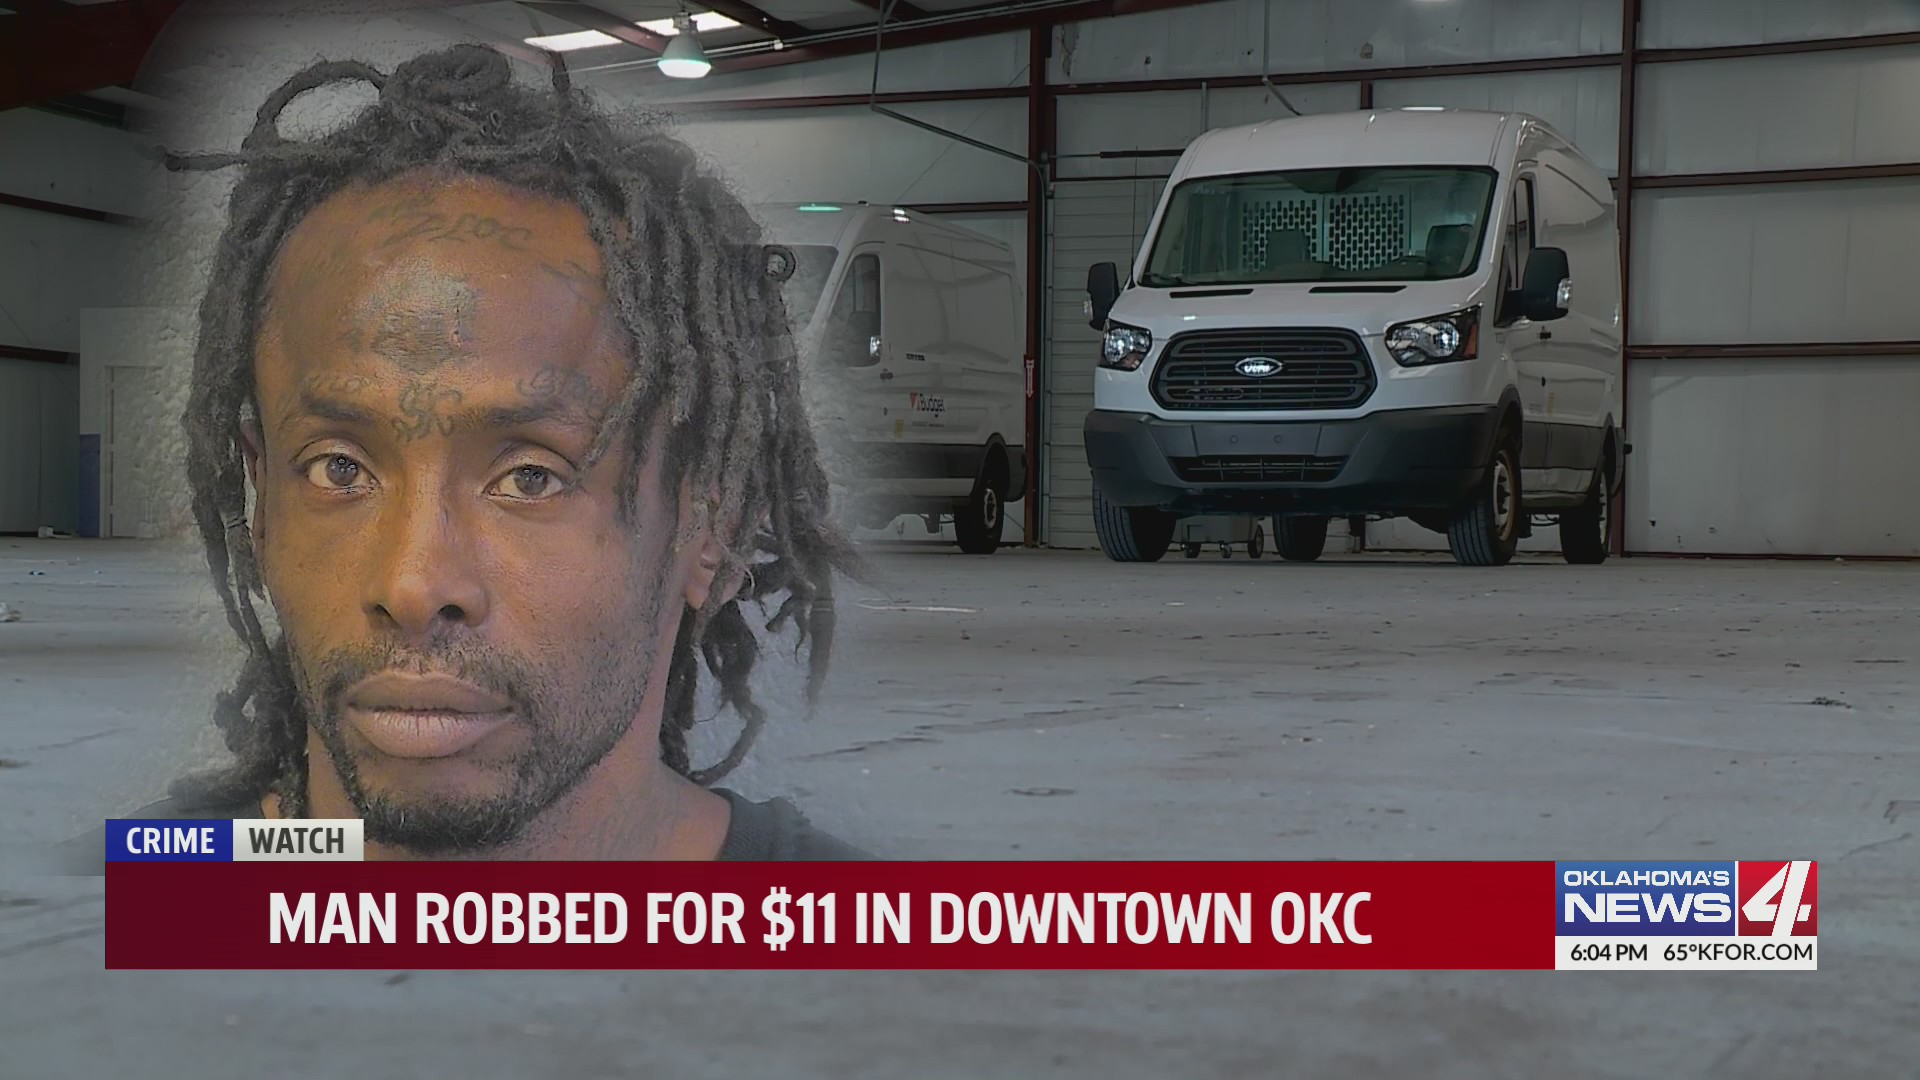 OKCPD: Oklahoma man robbed for $11 in broad daylight by repeat offender